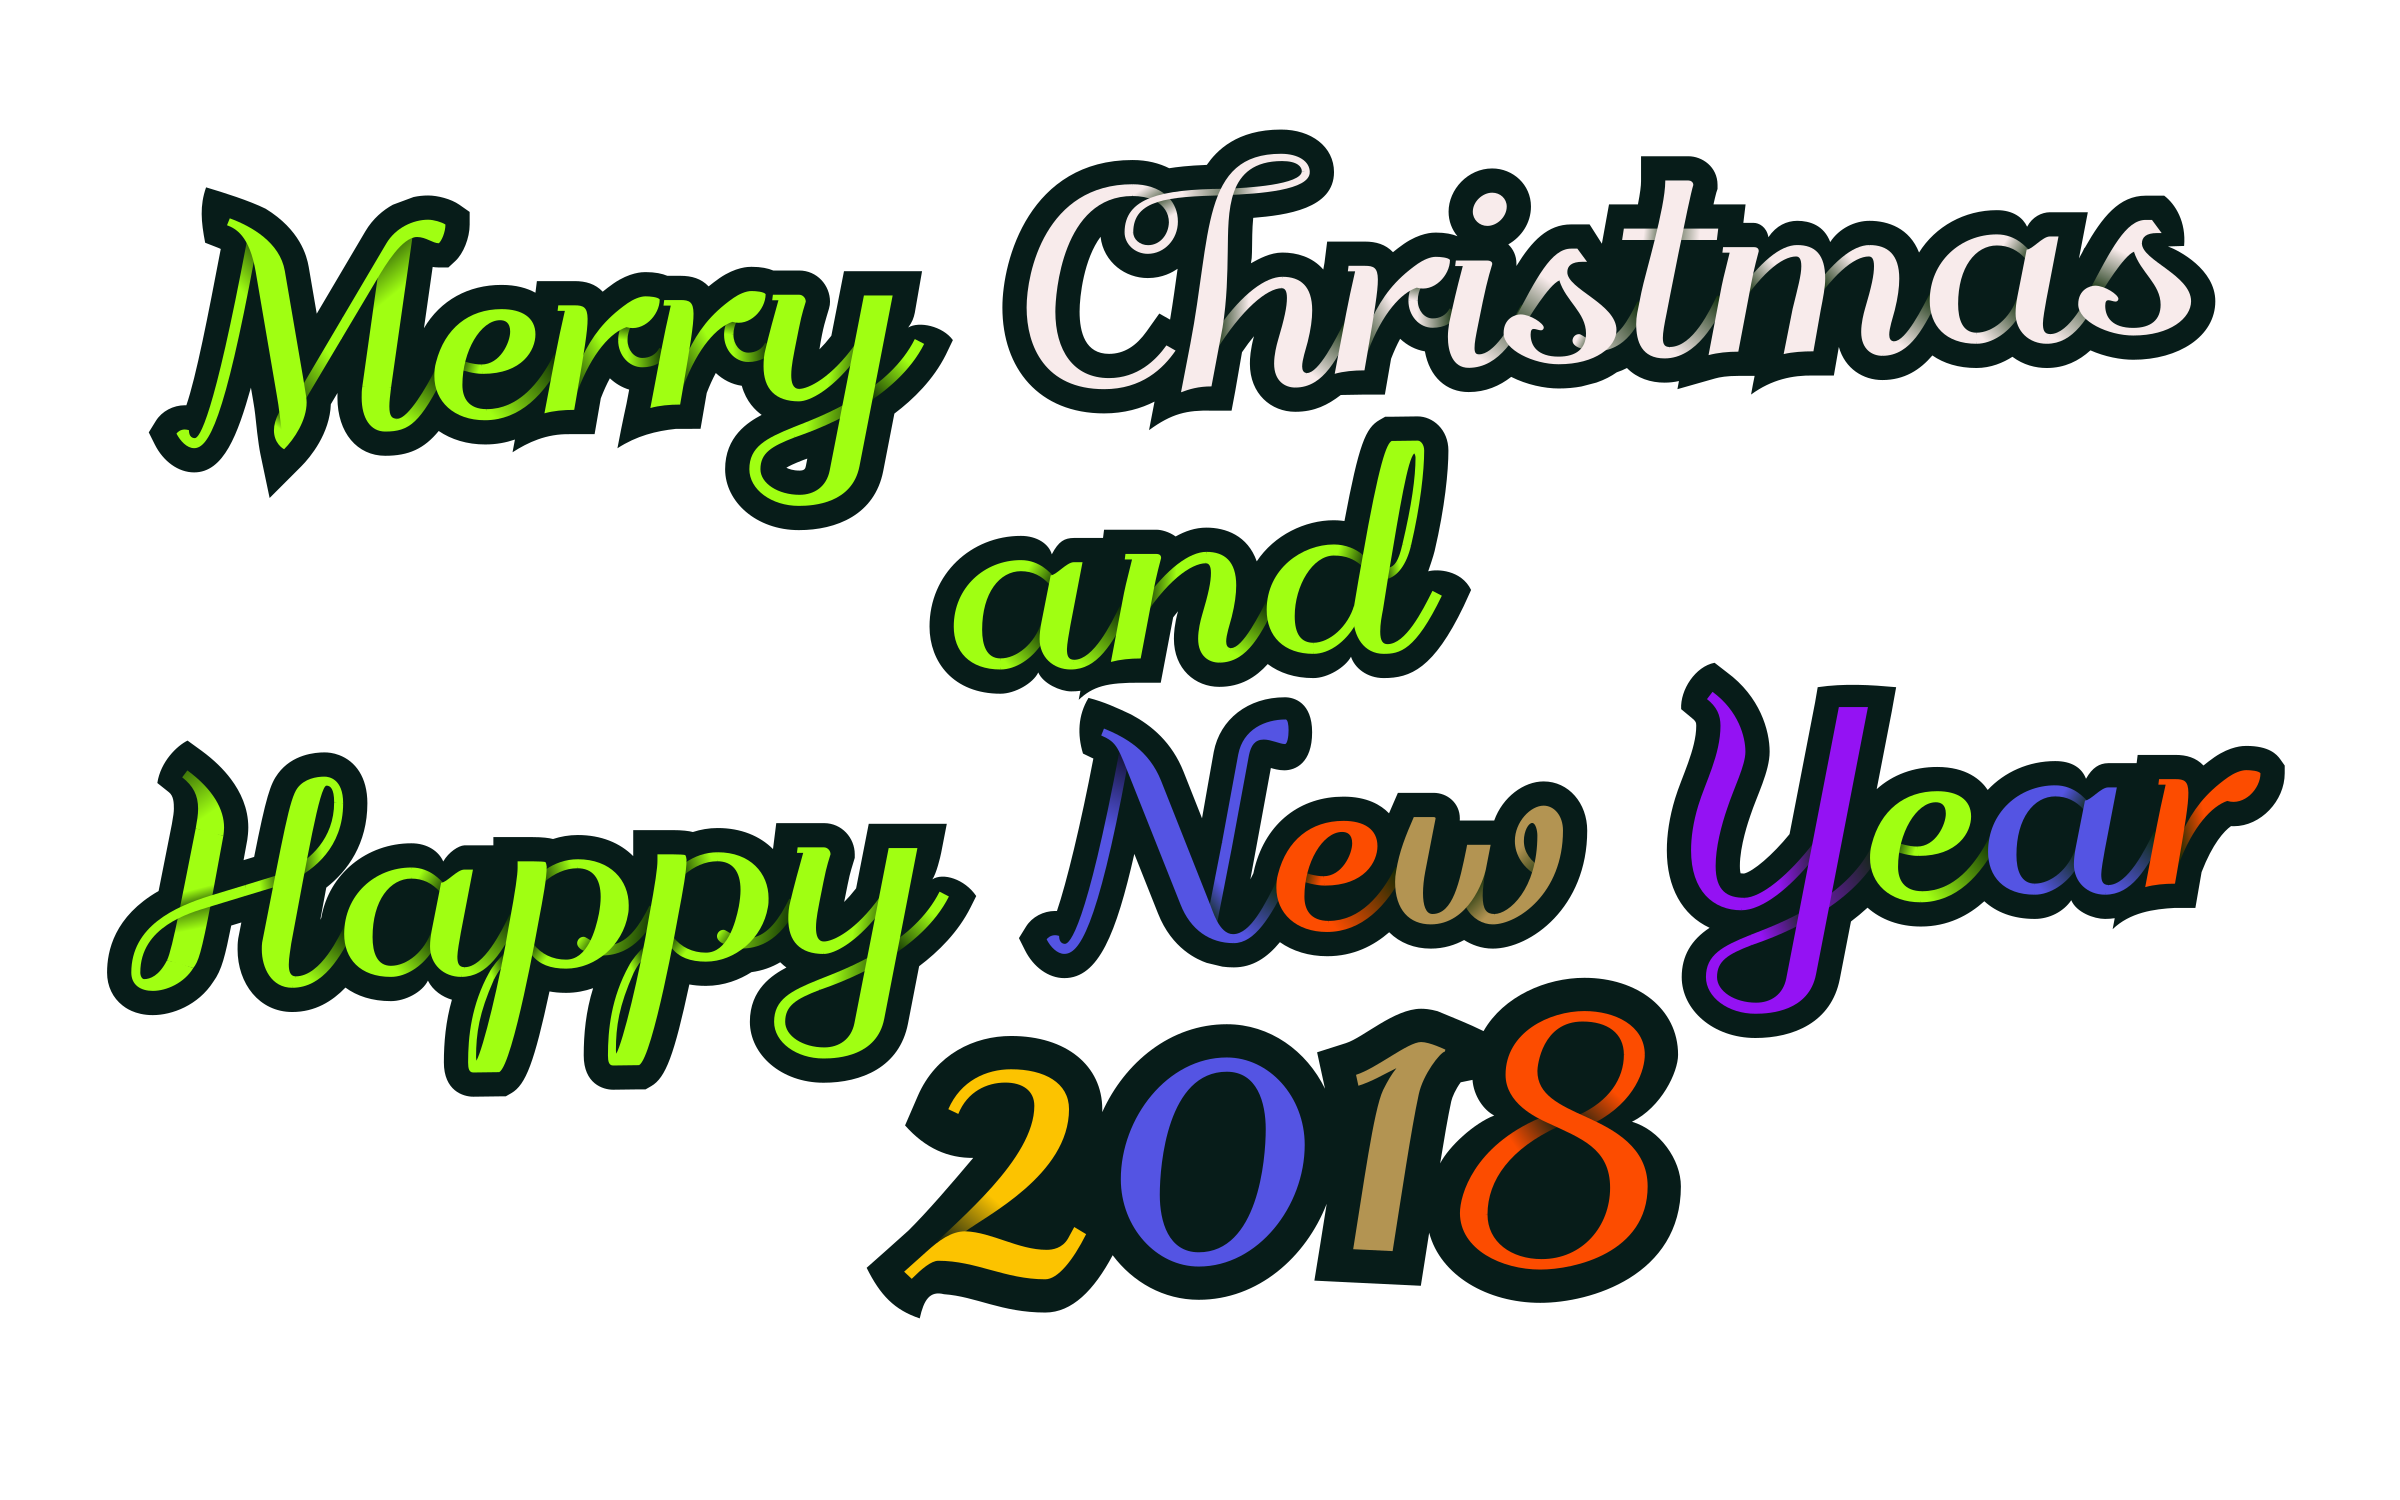 Christmas and new year clipart clip freeuse library Clipart - Merry Christmas & Happy New Year 2018 - decorative text clip freeuse library